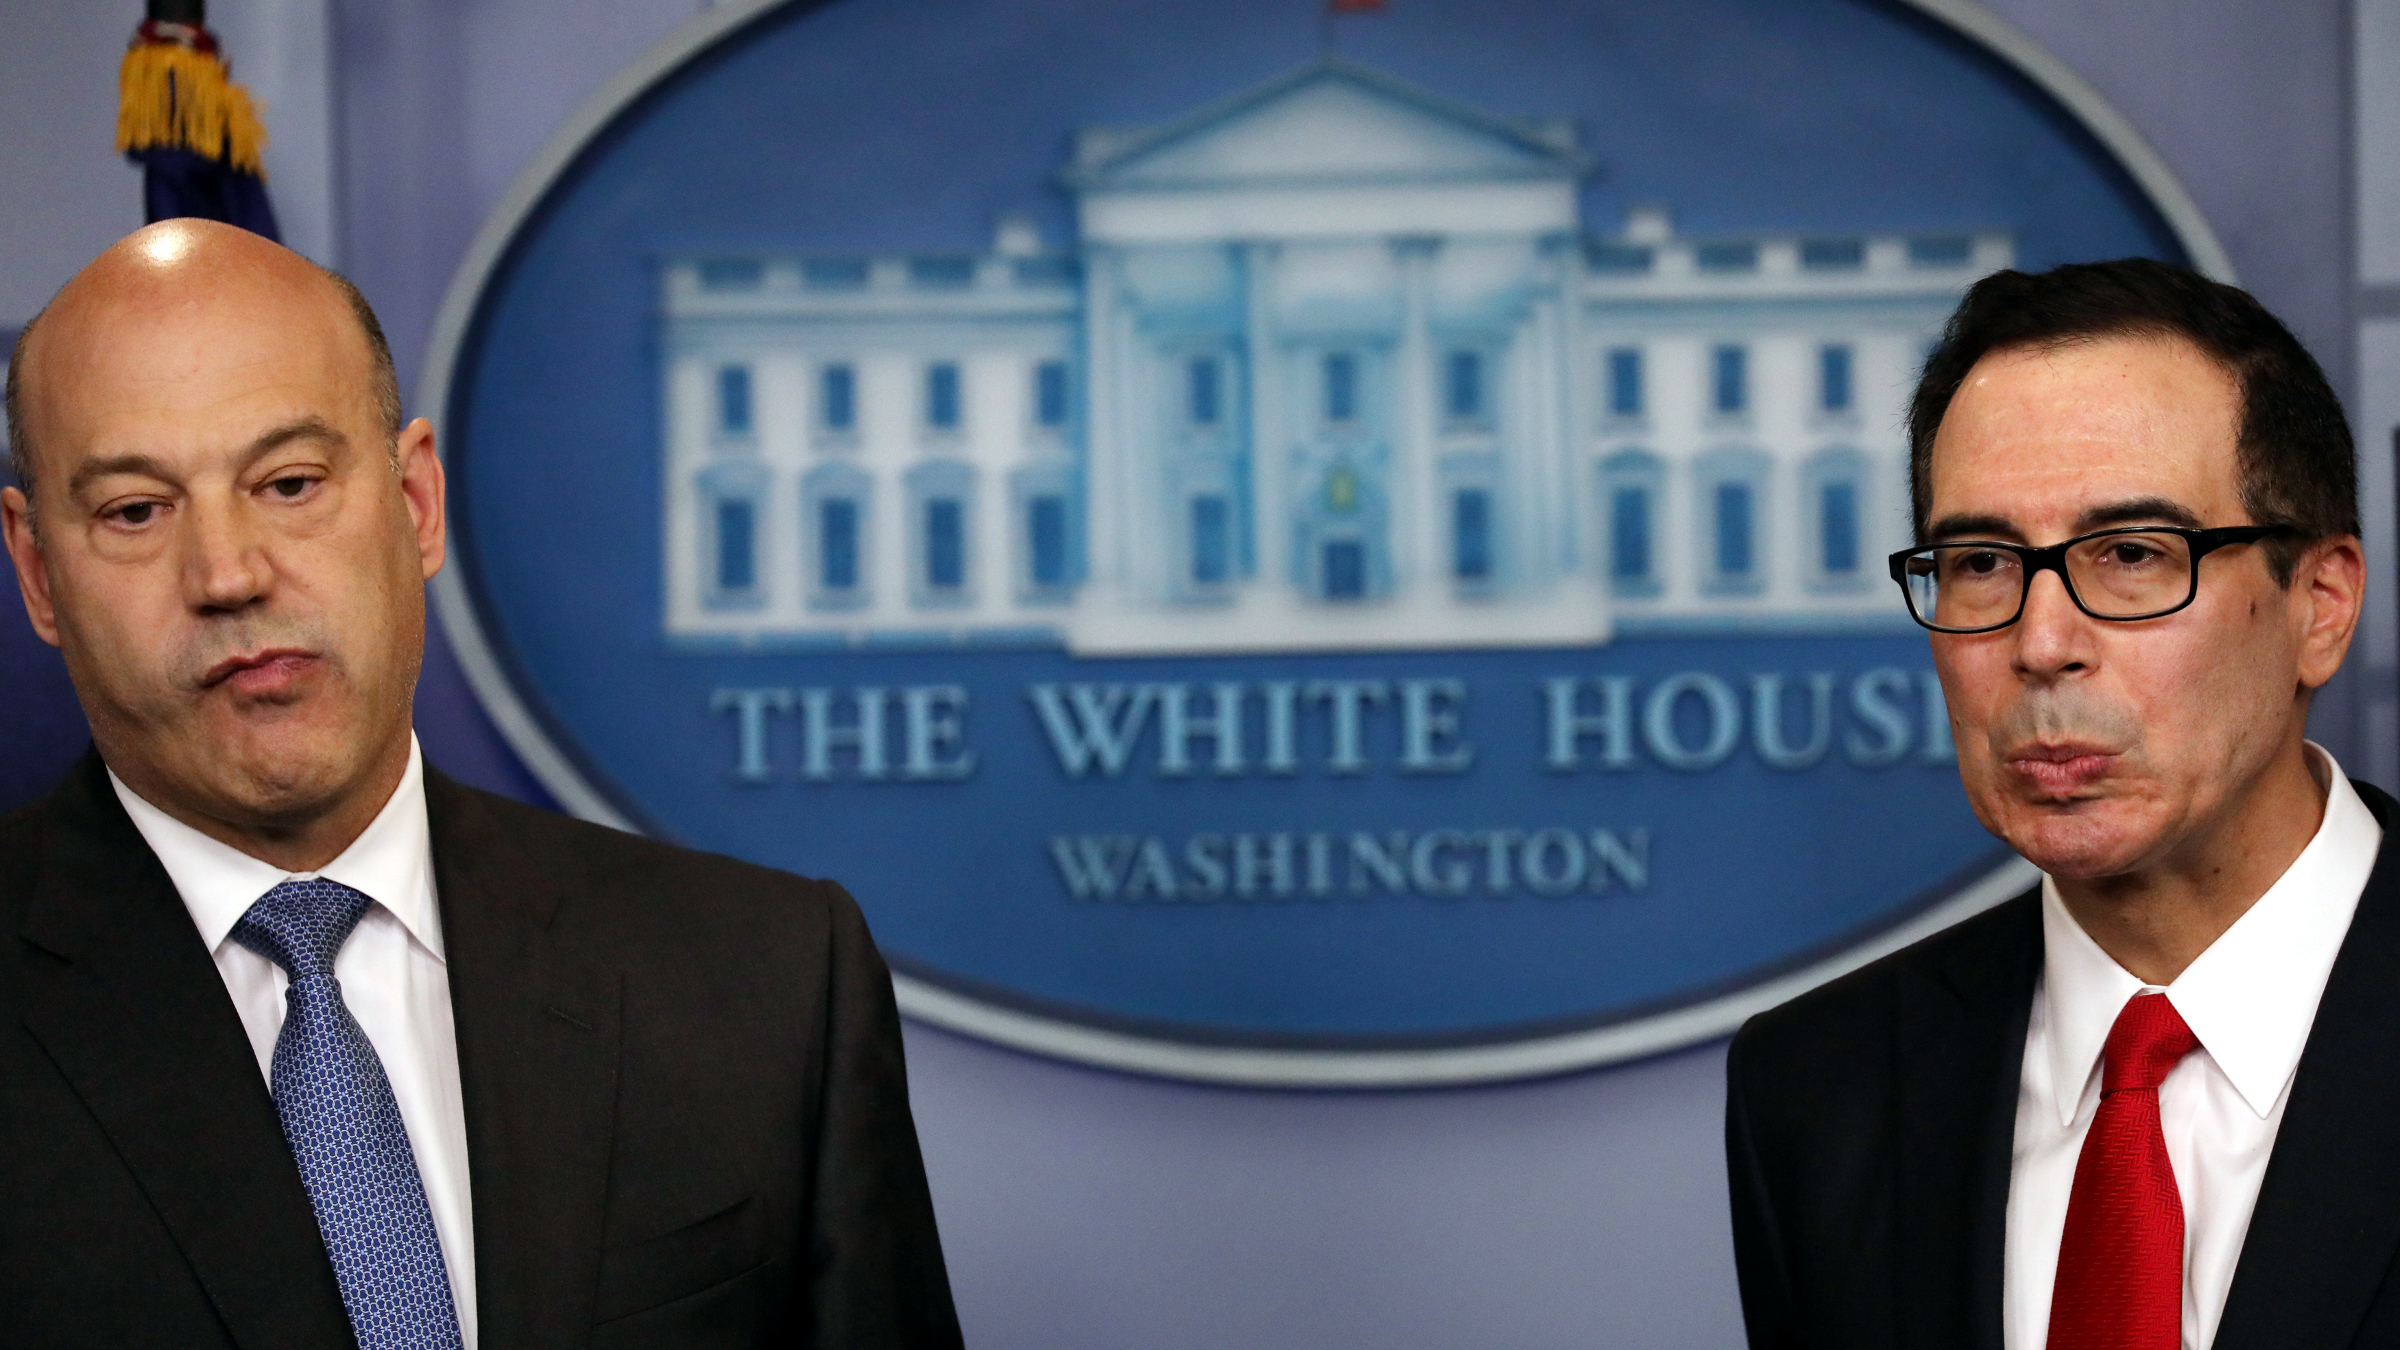 U.S. National Economic Director Gary Cohn (L) and Treasury Secretary Steven Mnuchin react to questions while unveiling the Trump administration's tax reform proposal in the White House briefing room in Washington, U.S, April 26, 2017.